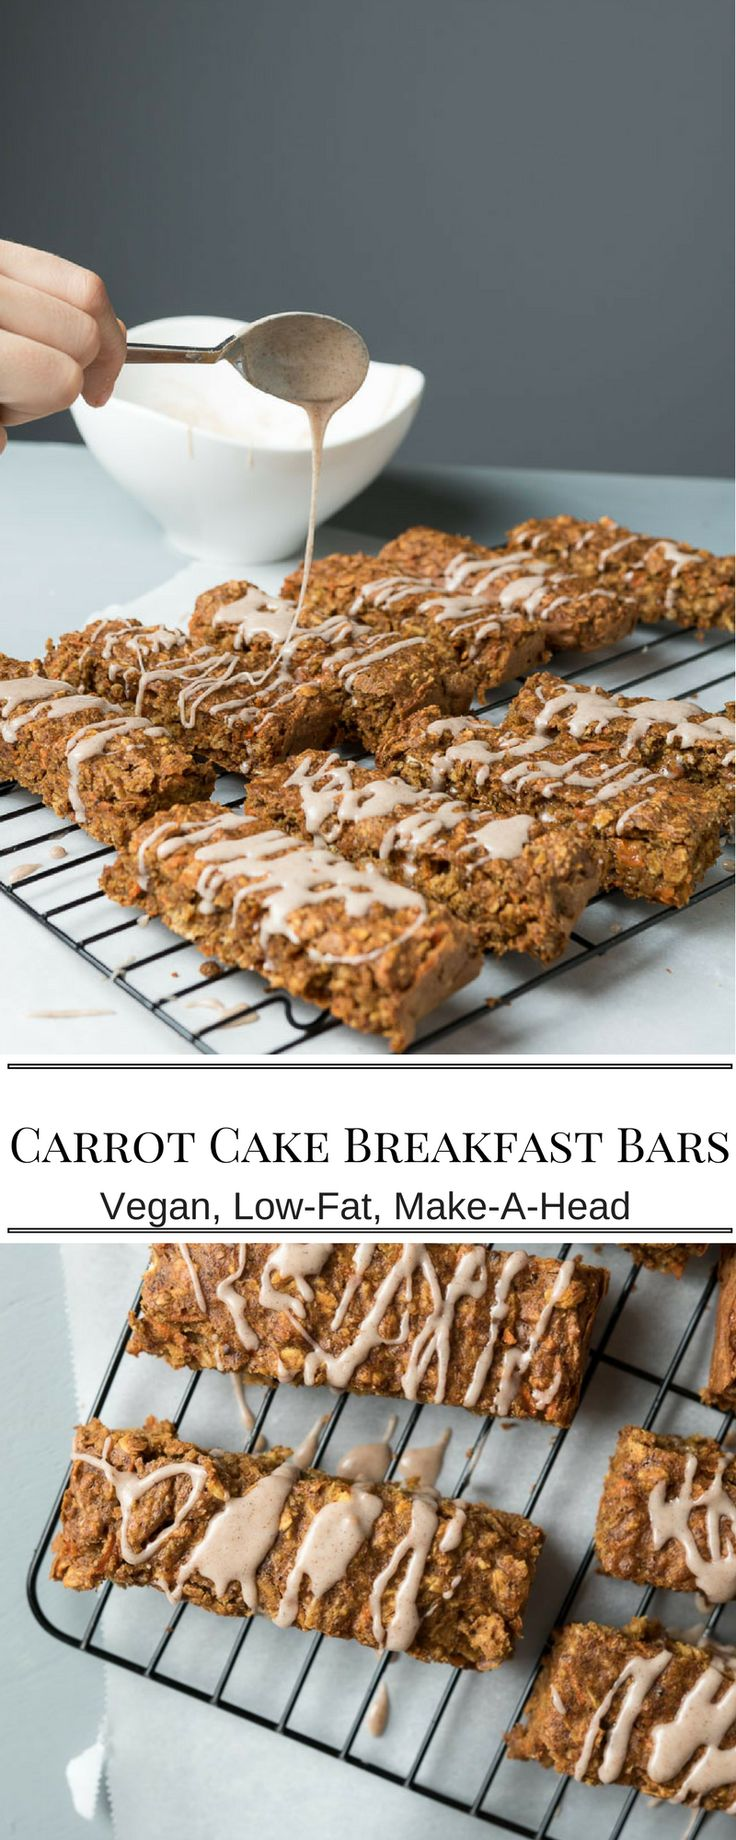 Carrot Cake Breakfast Bars. Make these ahead and stash in the freezer for a quick and healthy breakfast on the go. Oats, Carrots and peanut butter. Dairy free.